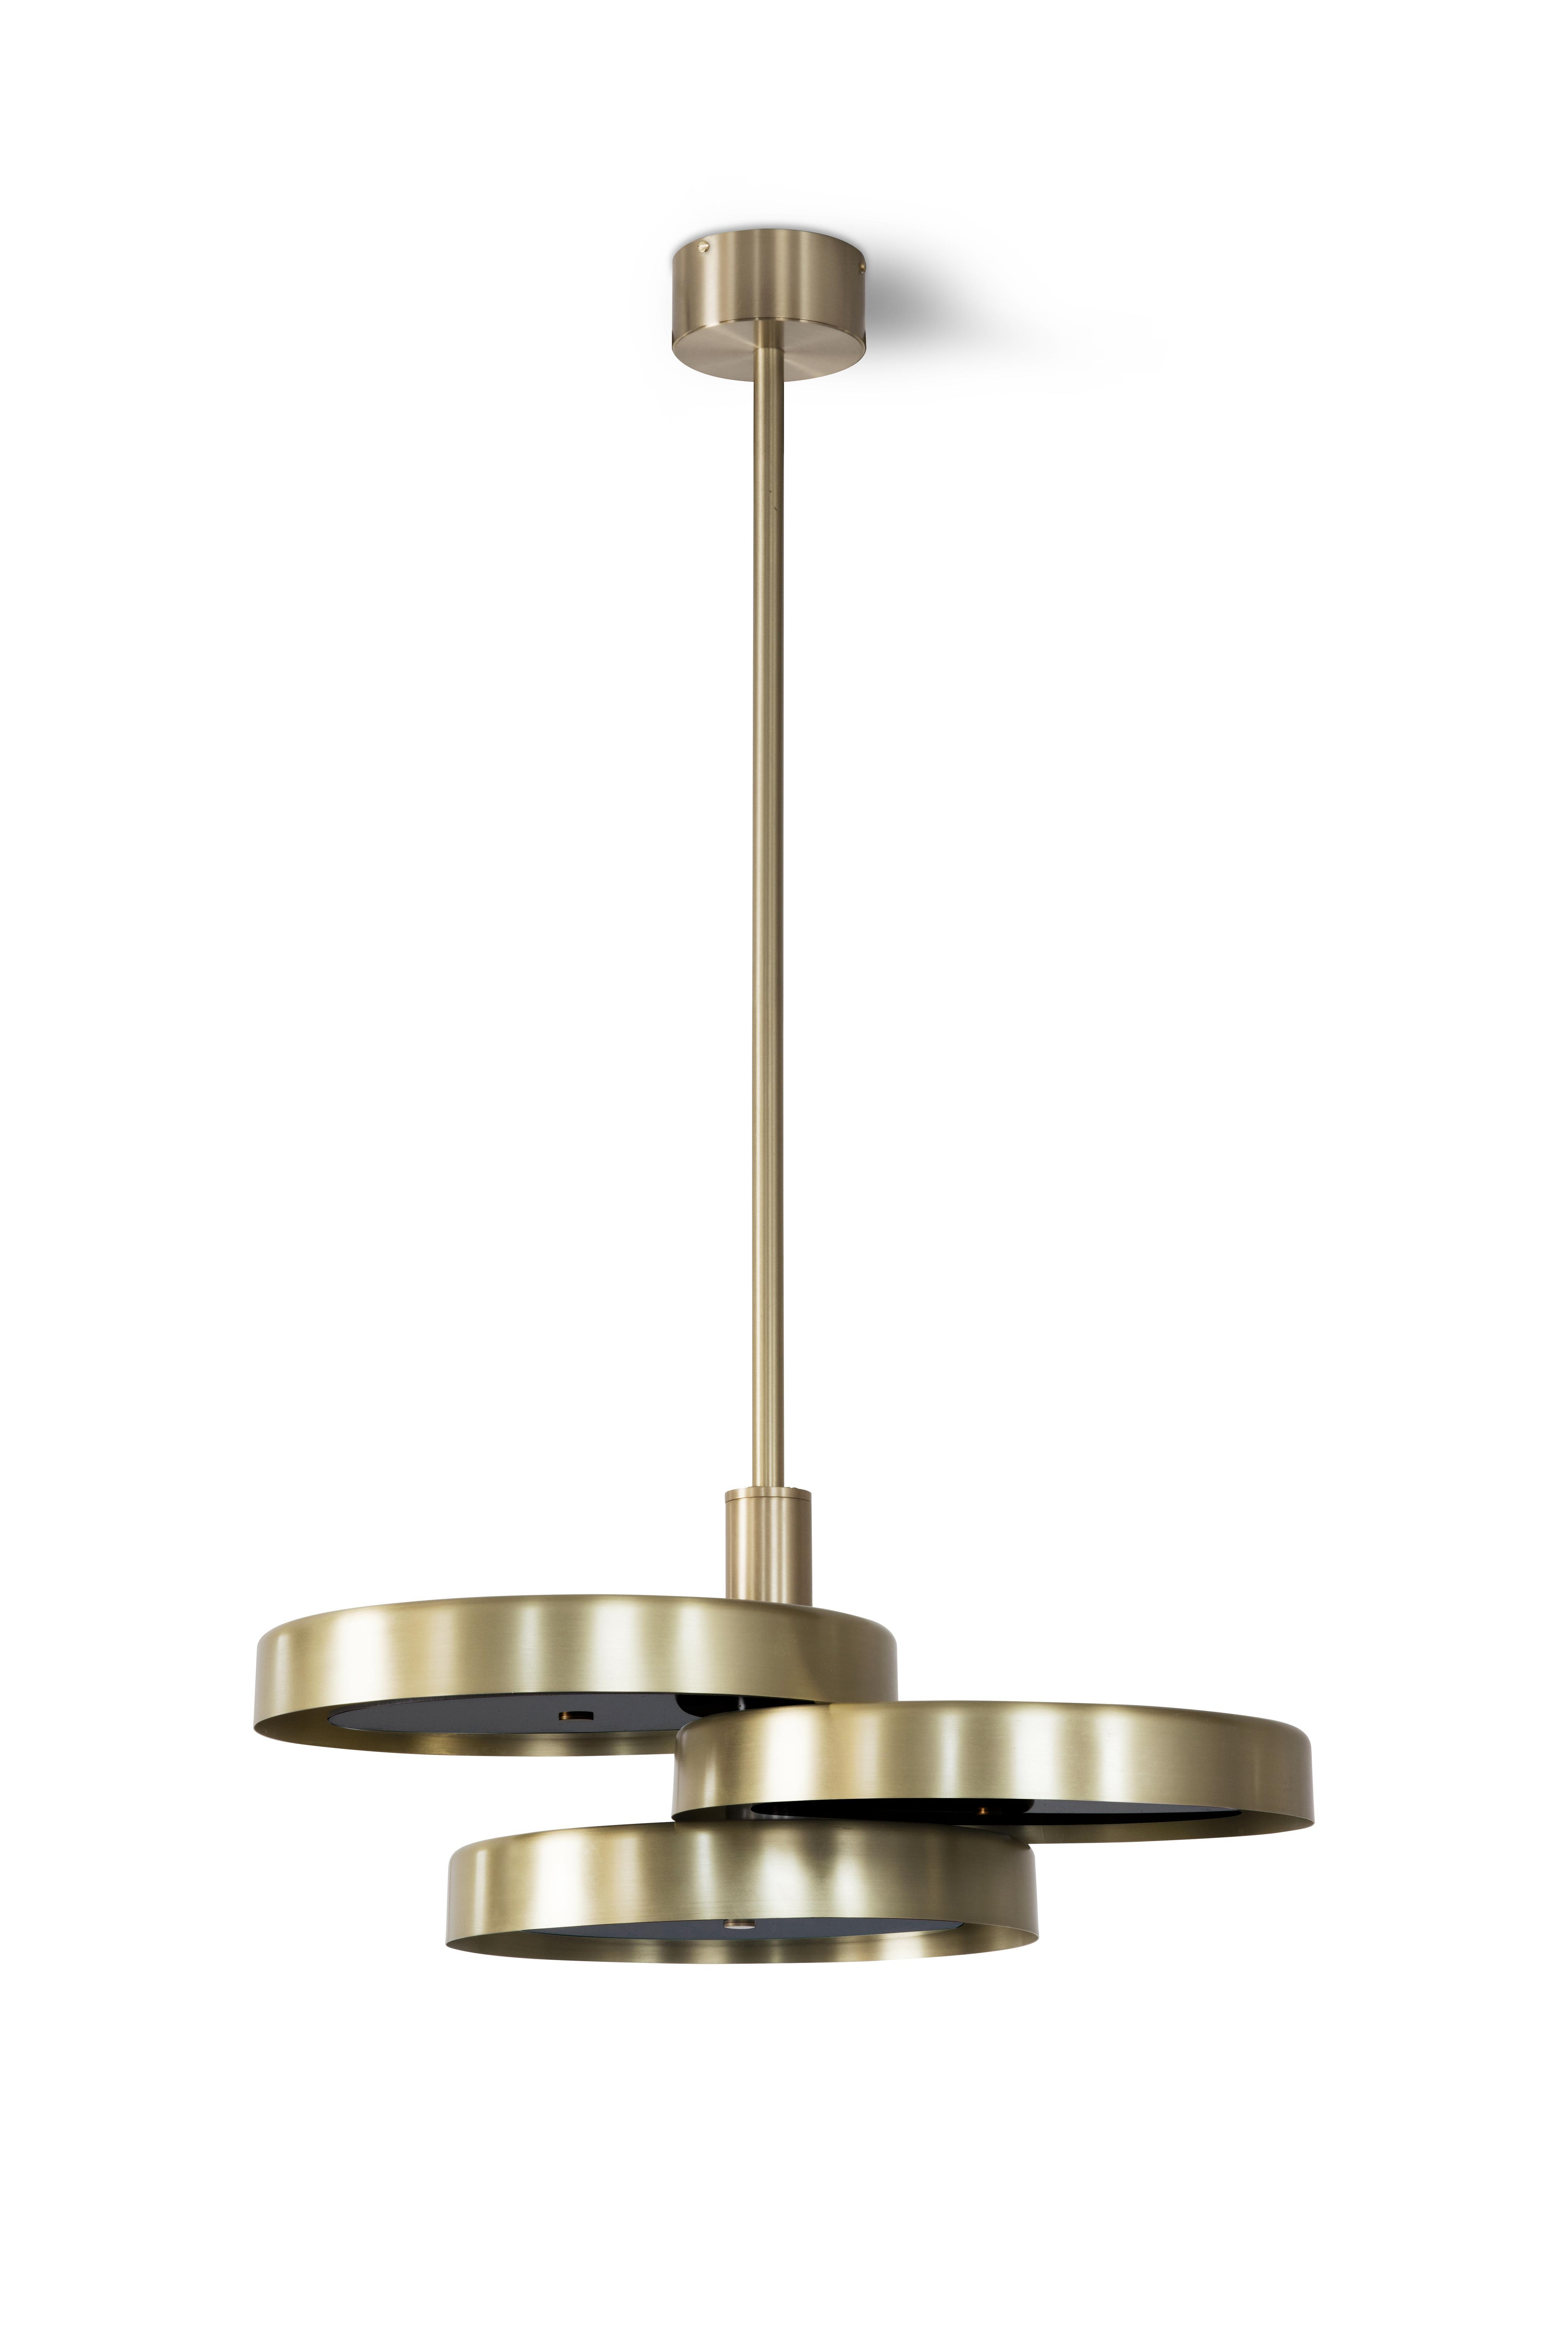 Triarc Pendant Light - <p><span>With three intersecting brass discs hung from a single drop rod, the Triarc Chandelier makes a dramatic impression. Grouped together with two or more pendants it creates a sculptural focal point. Available with opal or black diffusers. </p> <p></span></p>    Matter of Stuff